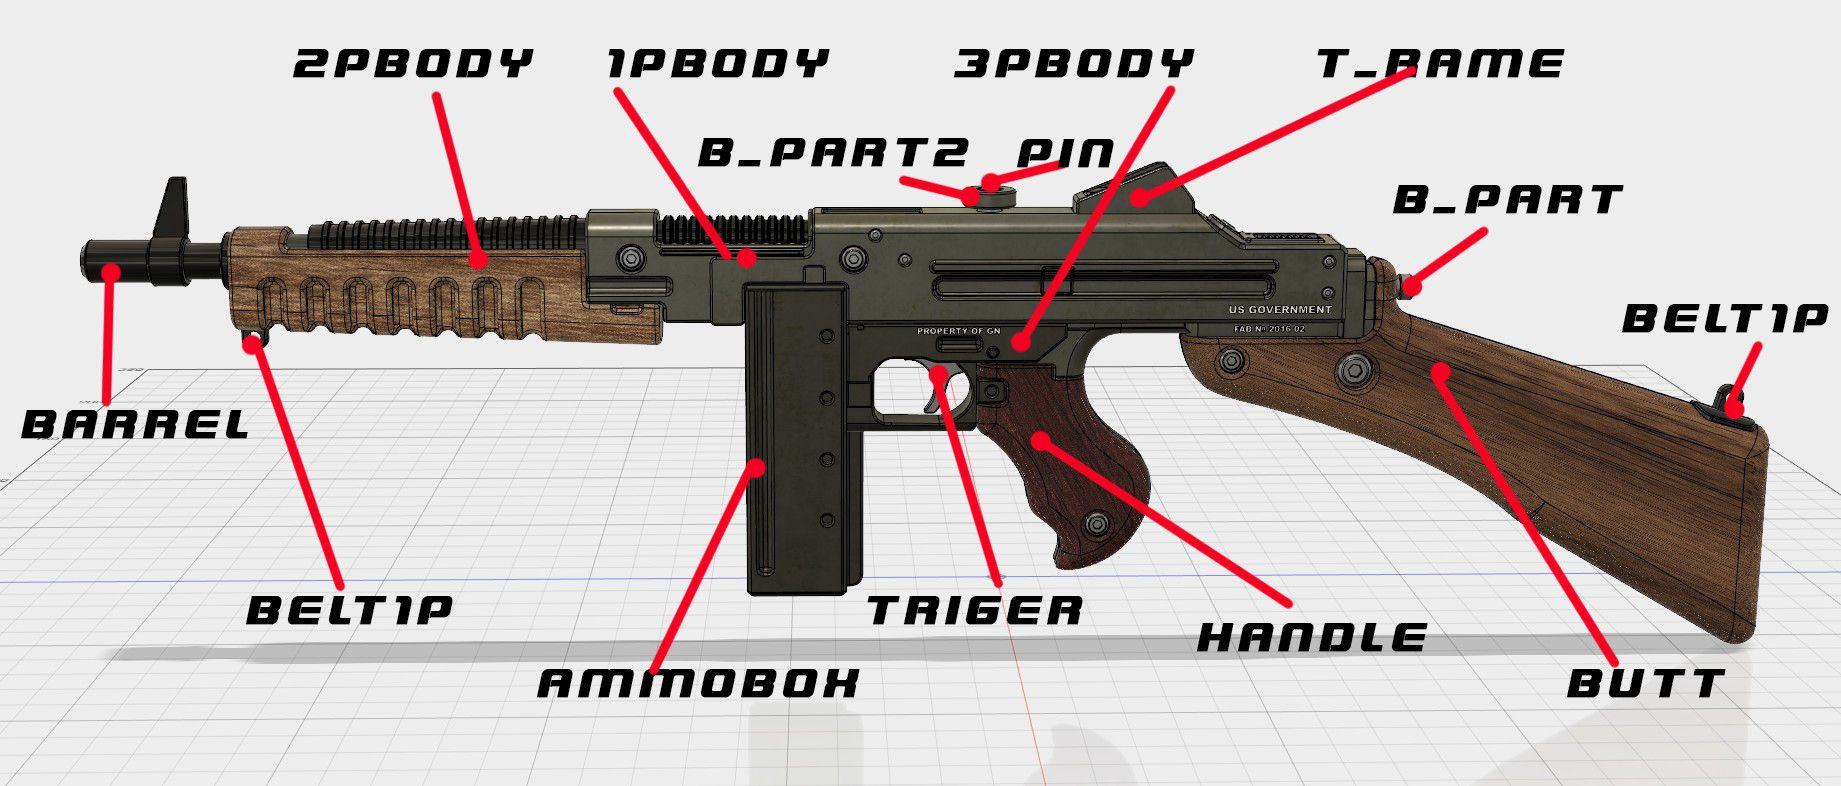 shms.jpg Download free STL file Wolfenstein The New Order SMG • 3D print model, 3dpicasso